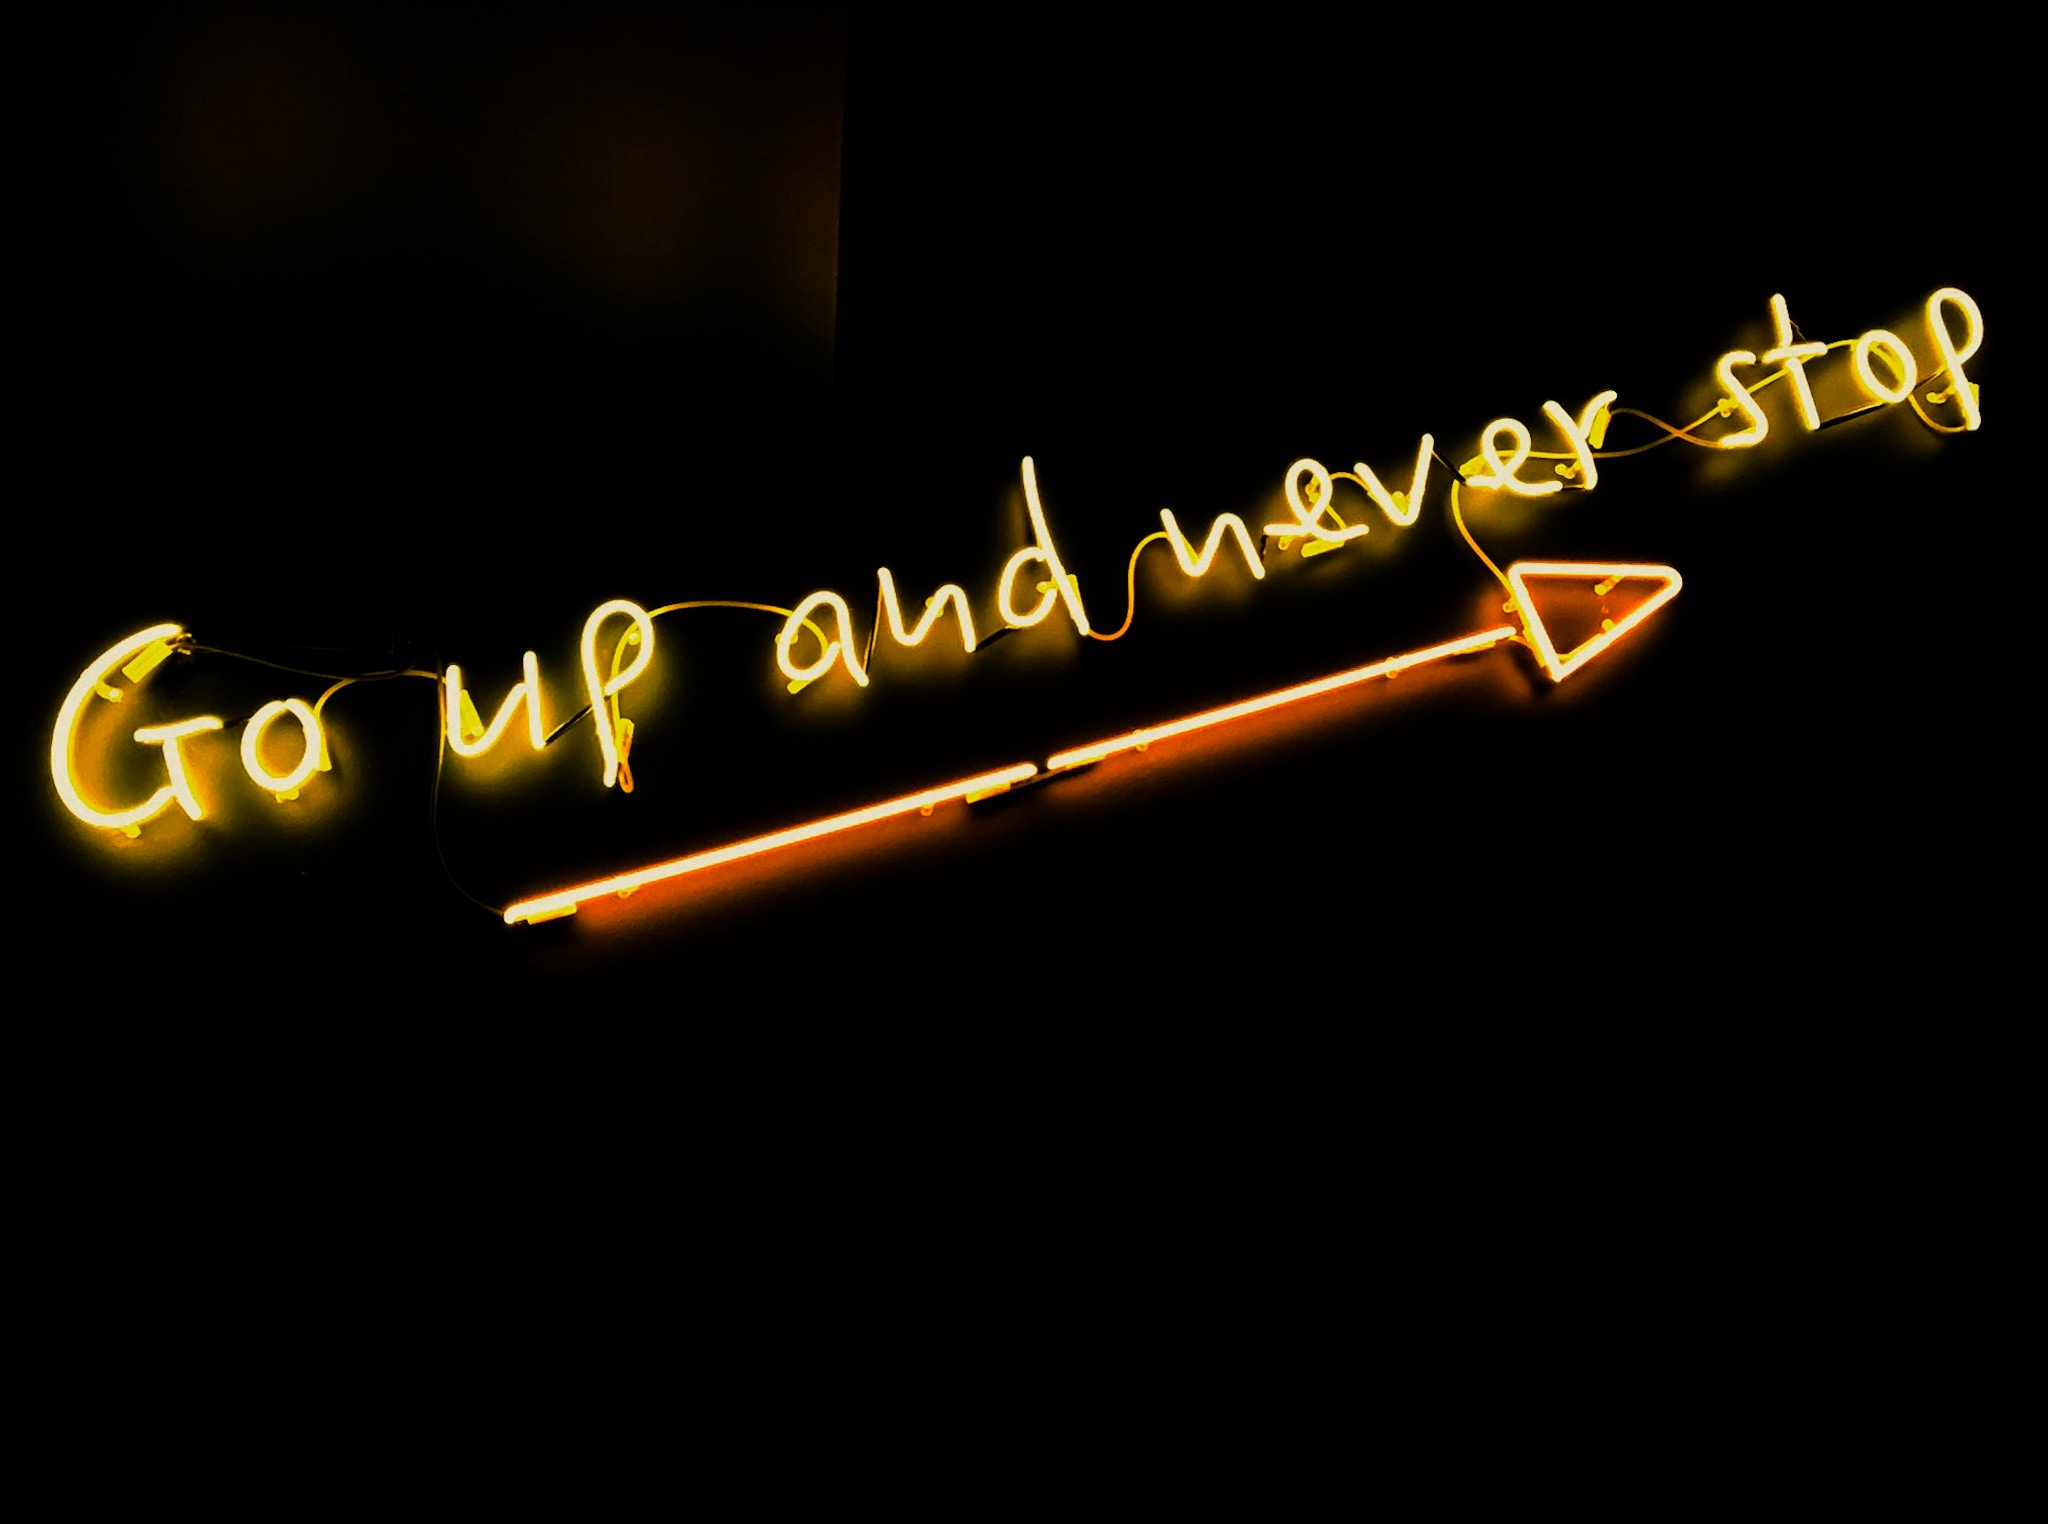 Go up and never stop inspirational sign